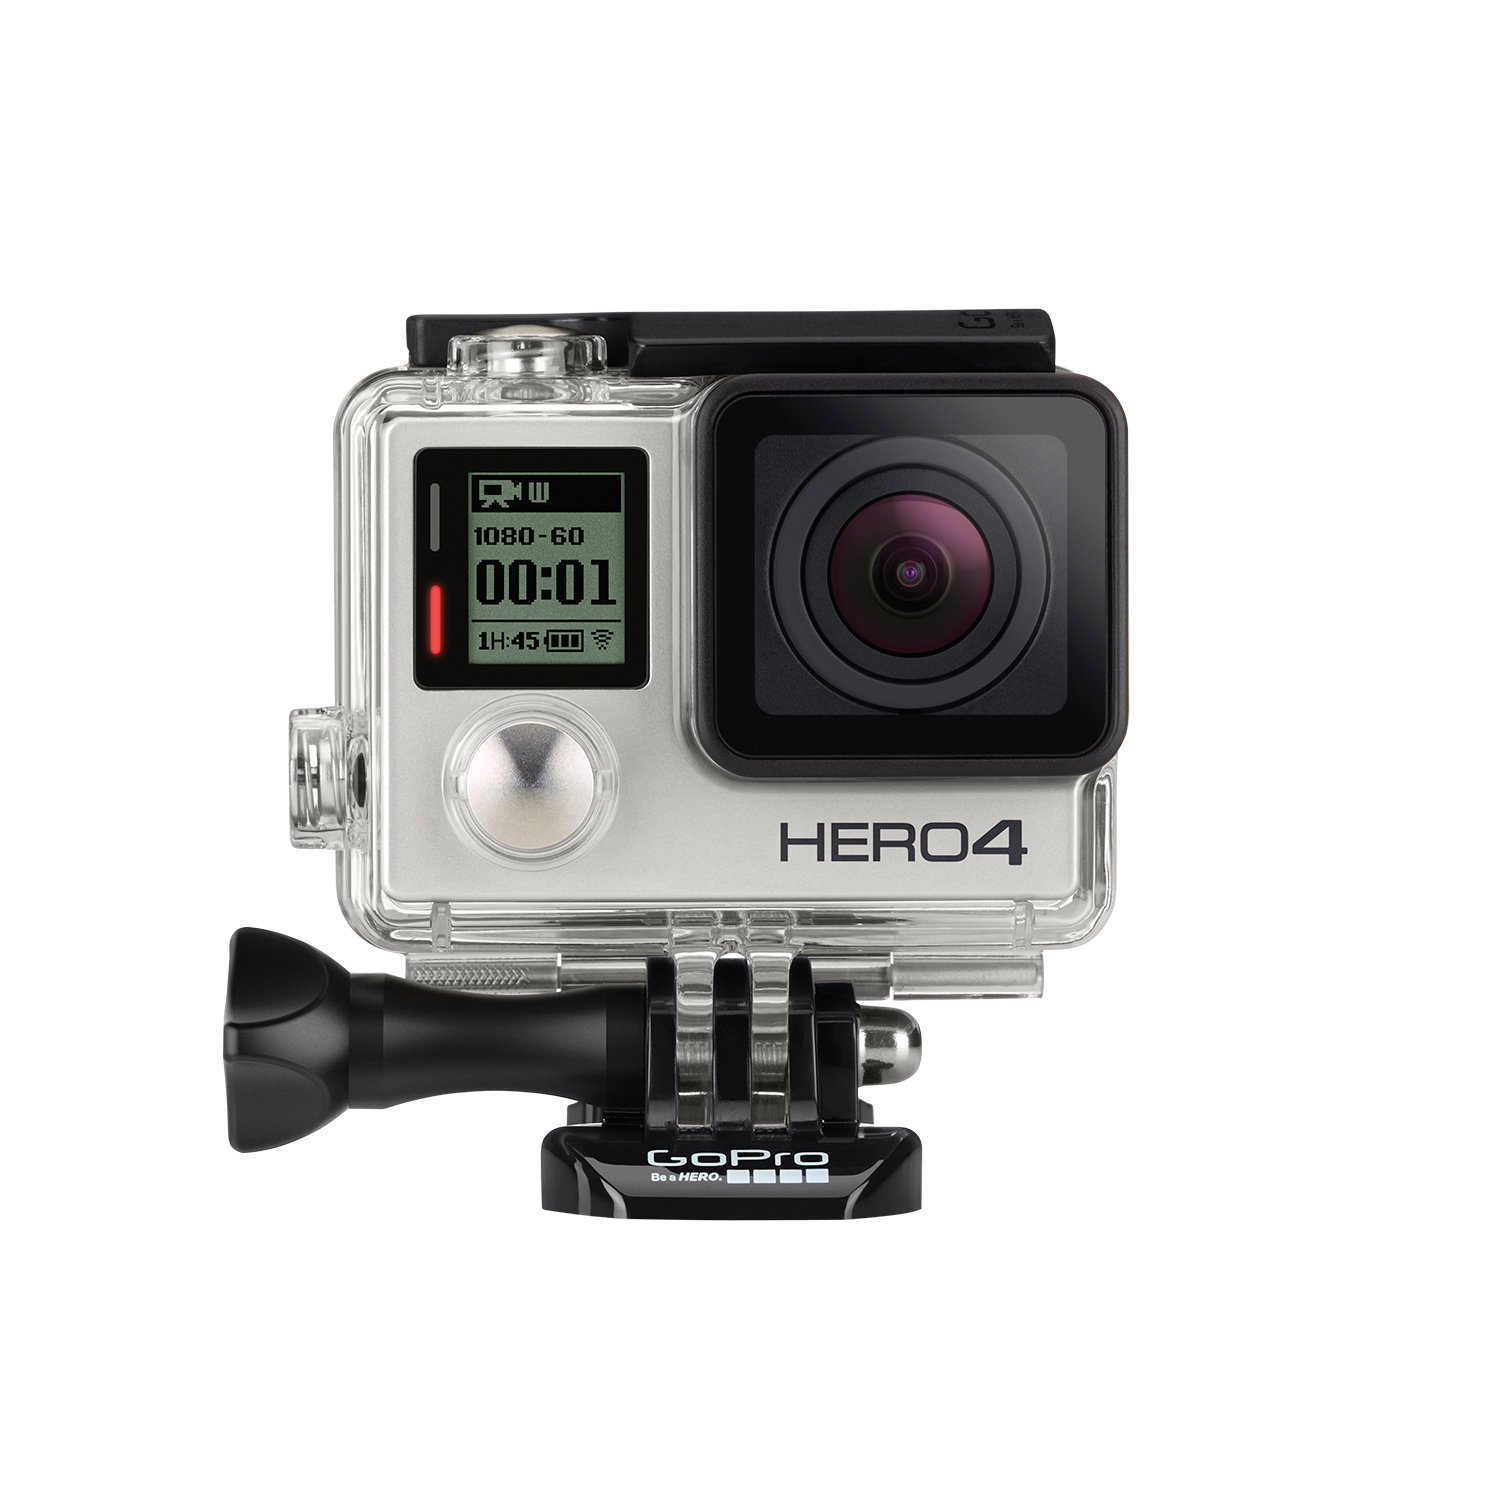 GoPro Hero 4 silver motorcycle action camera